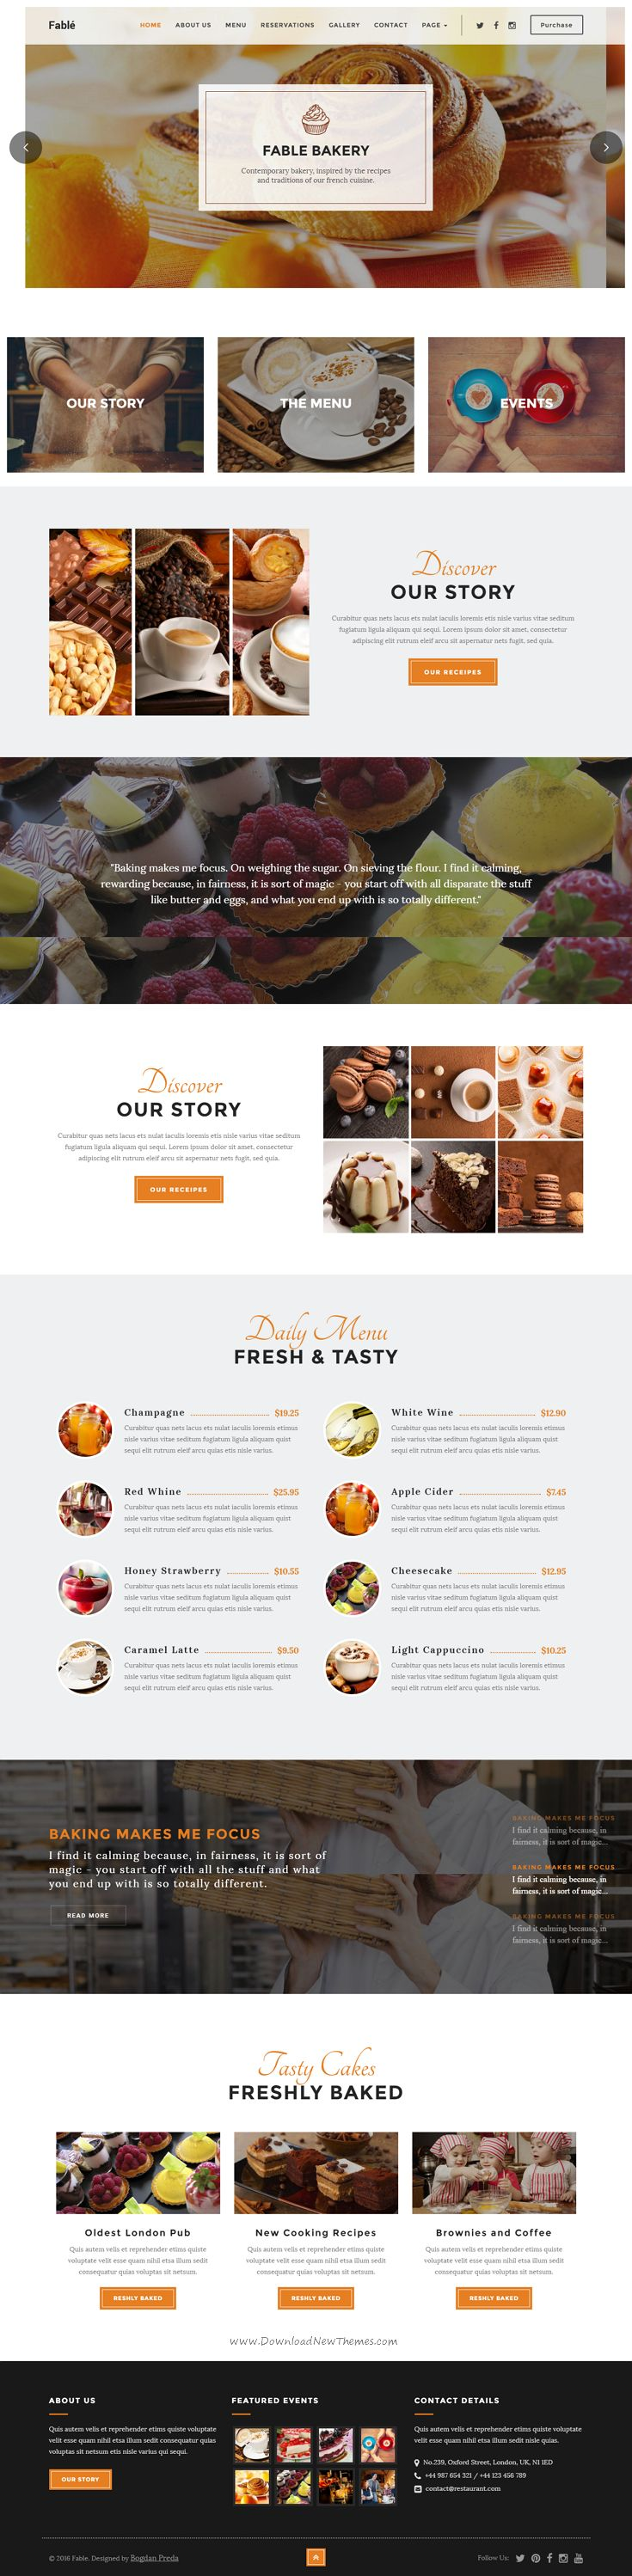 Fable is a premium WordPress theme, designed for food, #bakery, cafe, pub & restaurant #websites. It comes in 4 stunning homepage layouts.